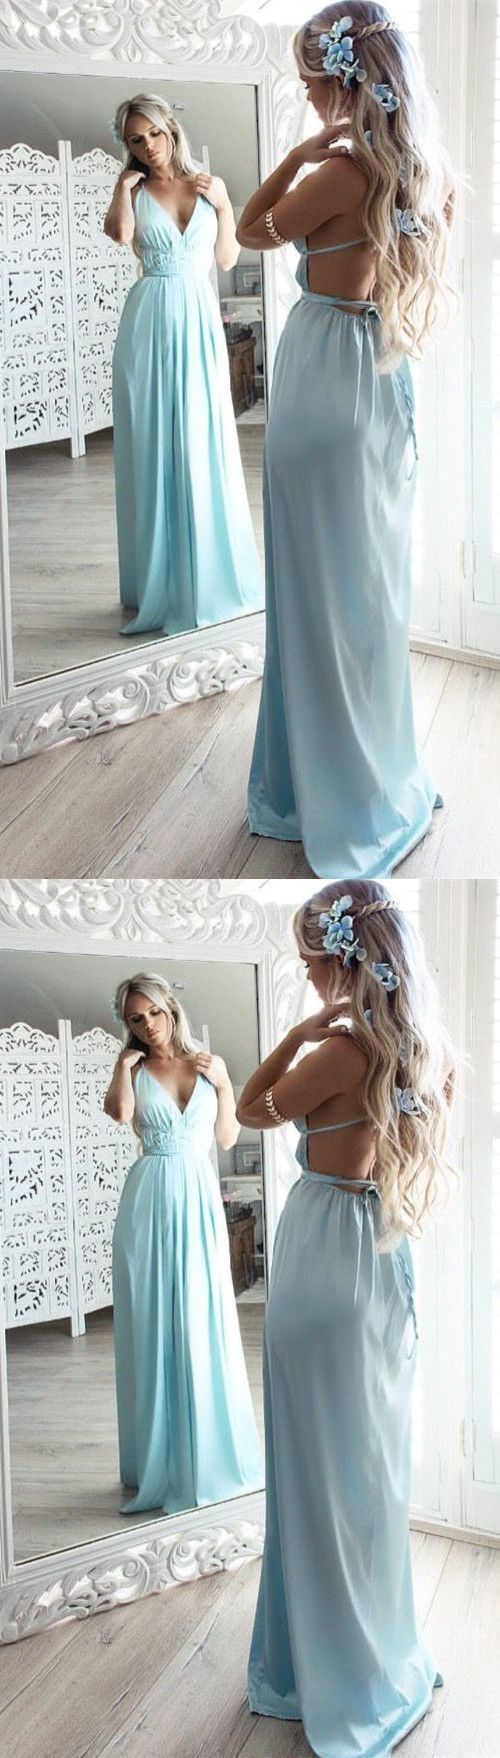 Sexy Light Blue Chiffon Evening Dress,Backless Long Prom Dress, D0351